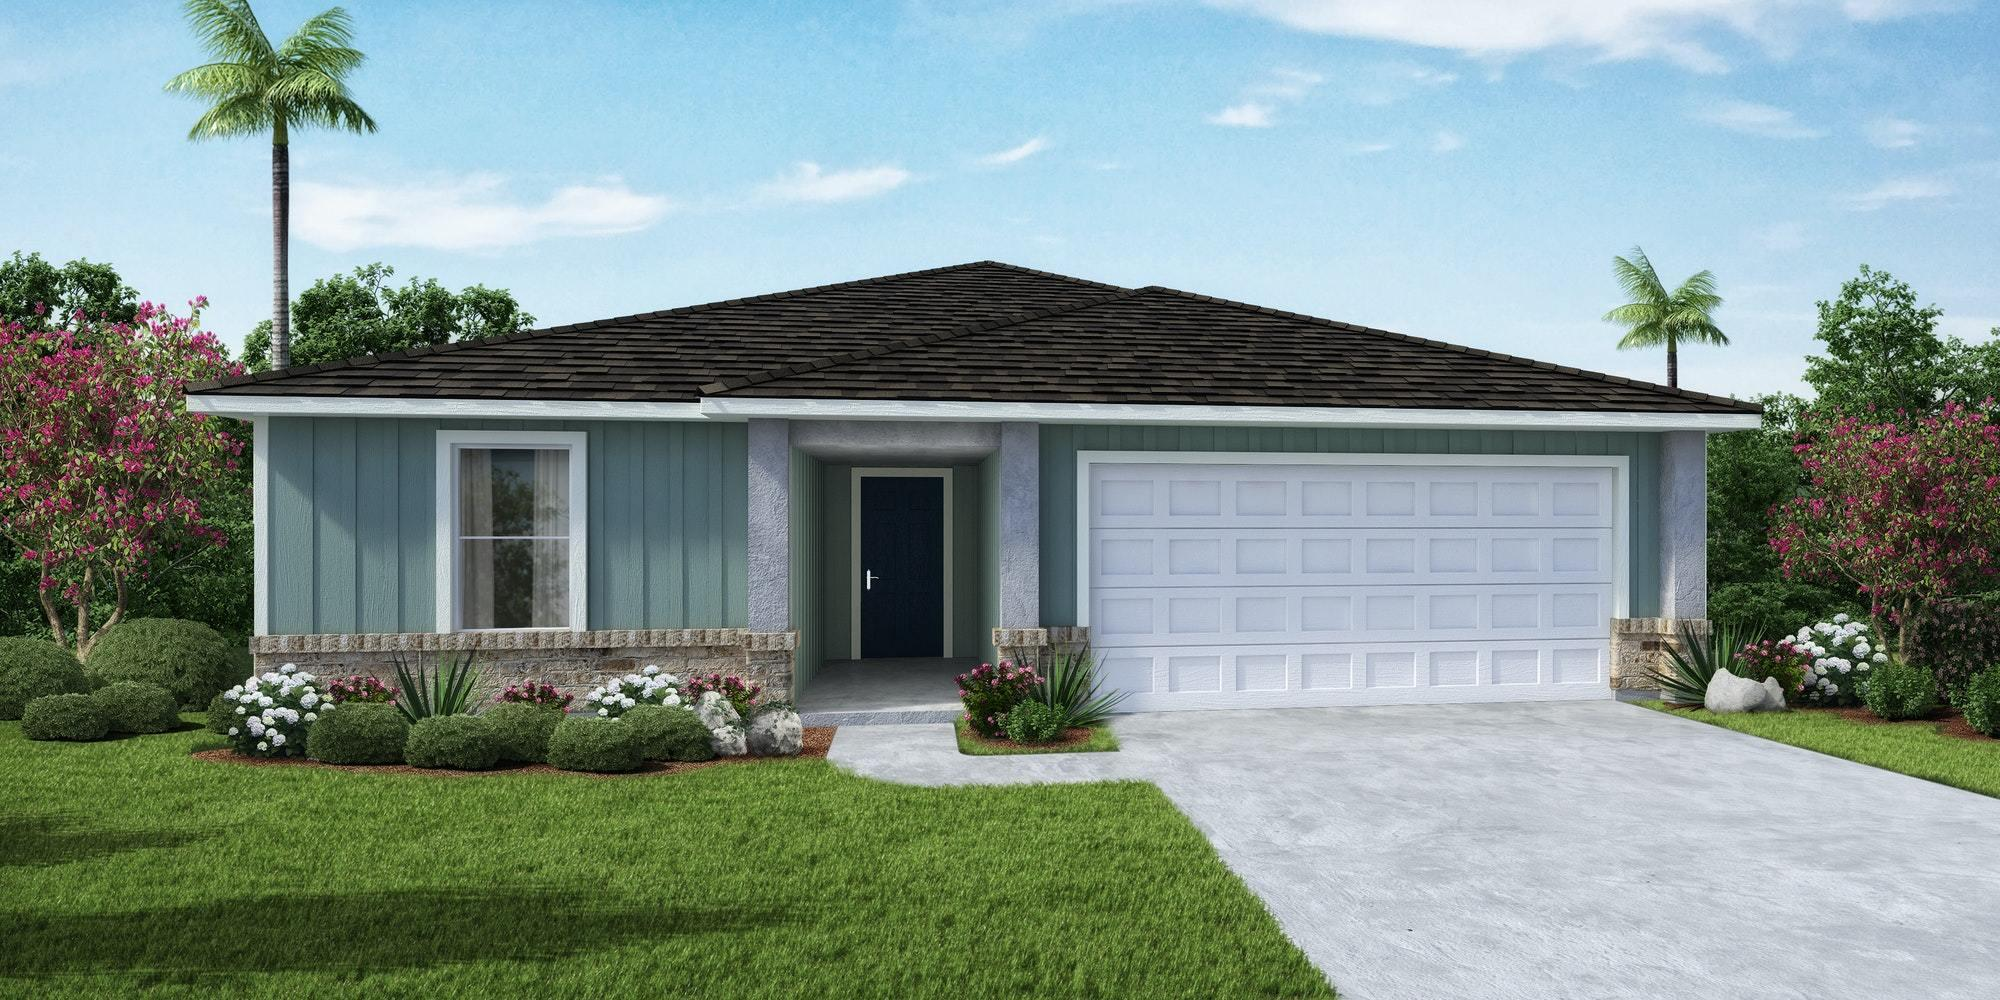 Sage 3 Bedroom, 2 Bath, 2 Car Garage with 1882 Square Feet. Home has Large Owners Suite and Owners Bath